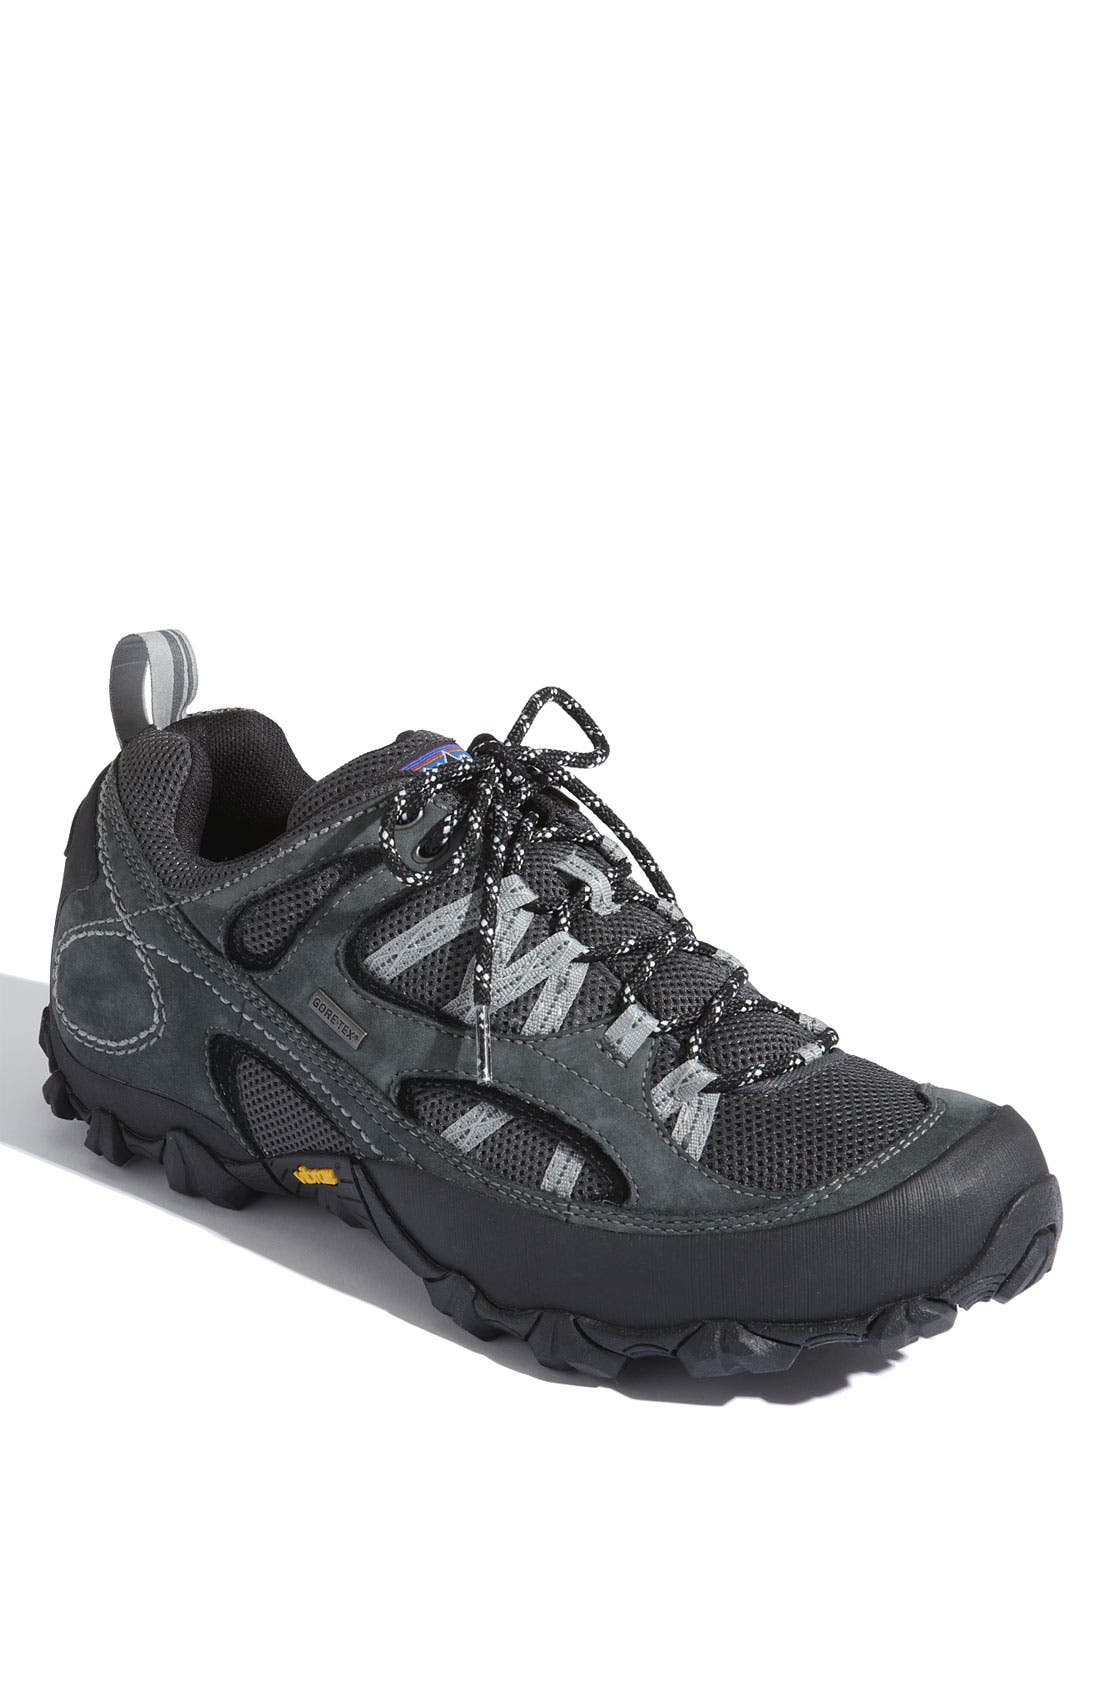 Alternate Image 1 Selected - Patagonia 'Drifter AC GTX' Trail Shoe